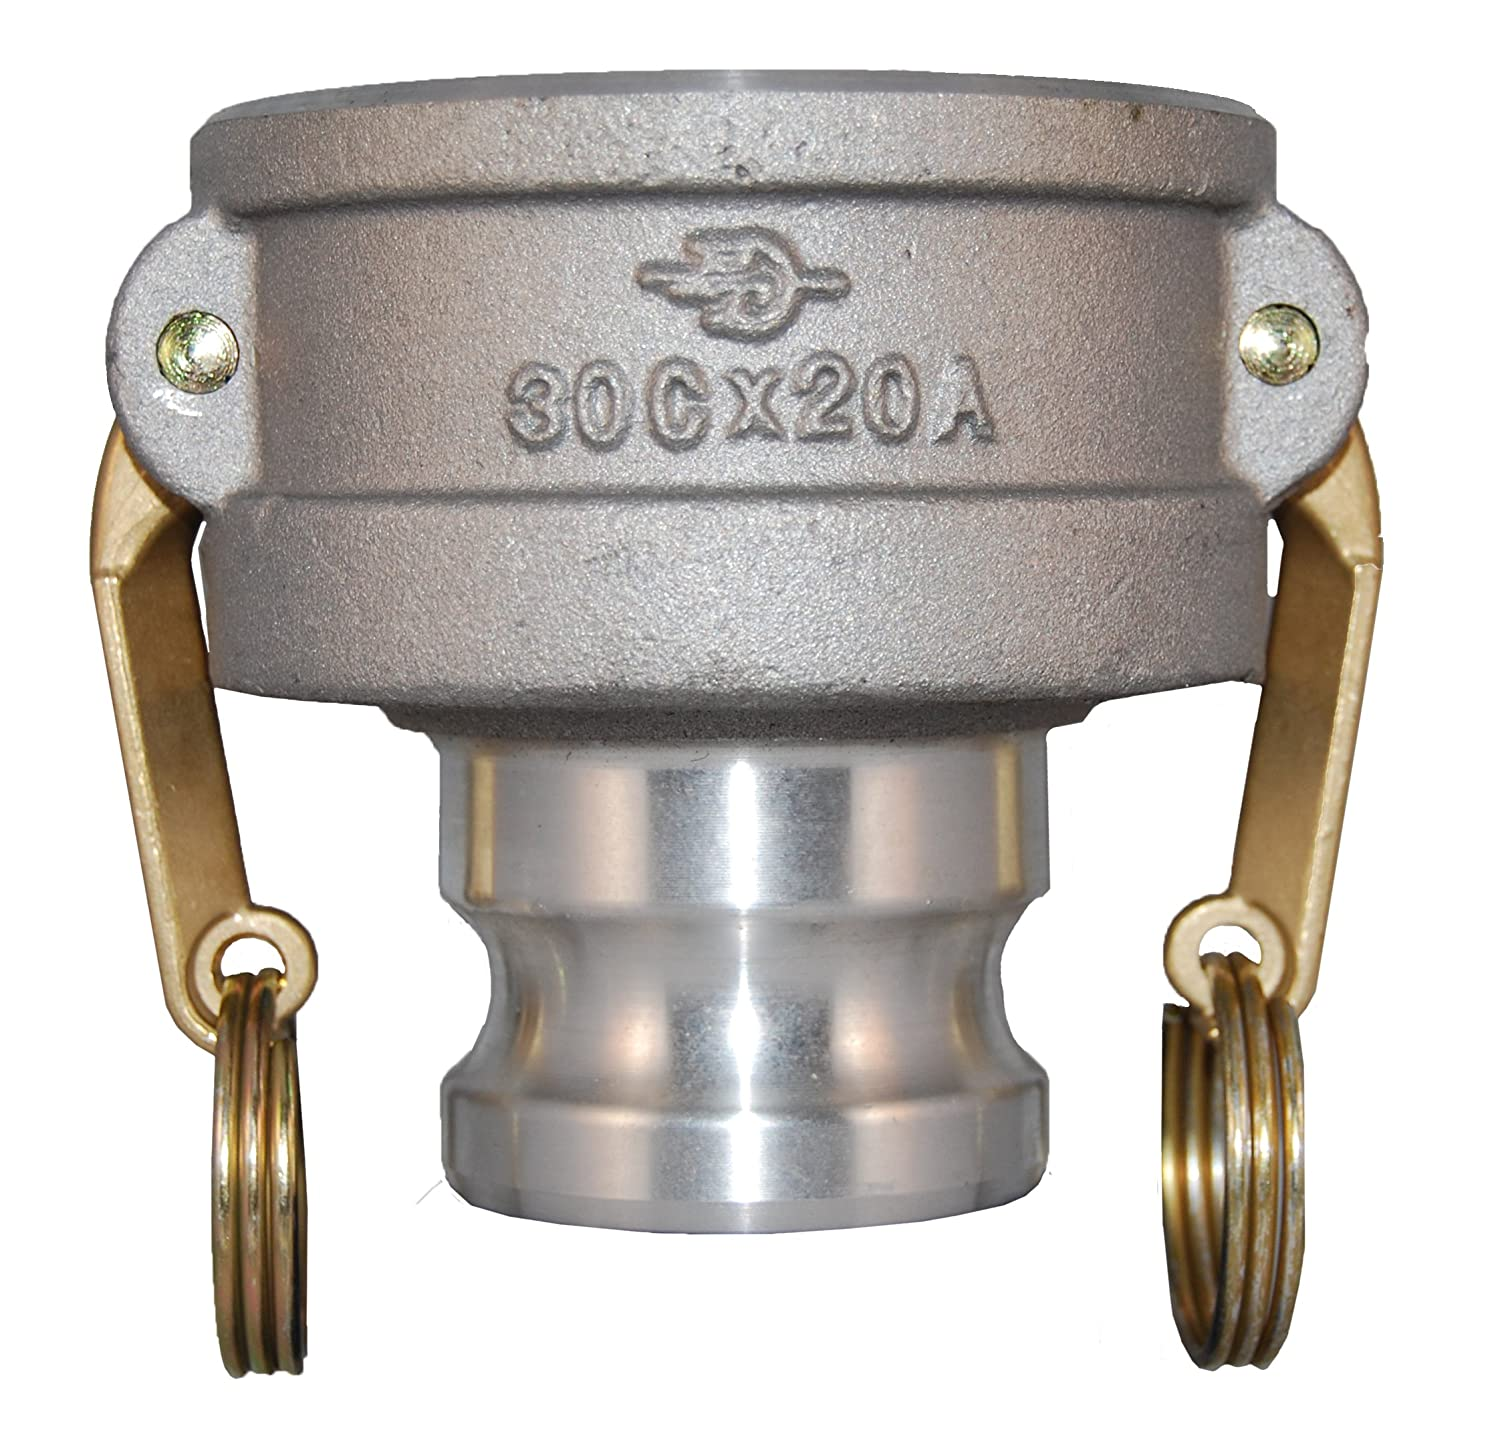 PT Coupling CXA Series 40CX20A Aluminum Reducer Cam and Groove Hose Fitting, CXA Short Reducer, Brass (HB) Cam Arms, 4' Coupler x 2' Adapter 4 Coupler x 2 Adapter